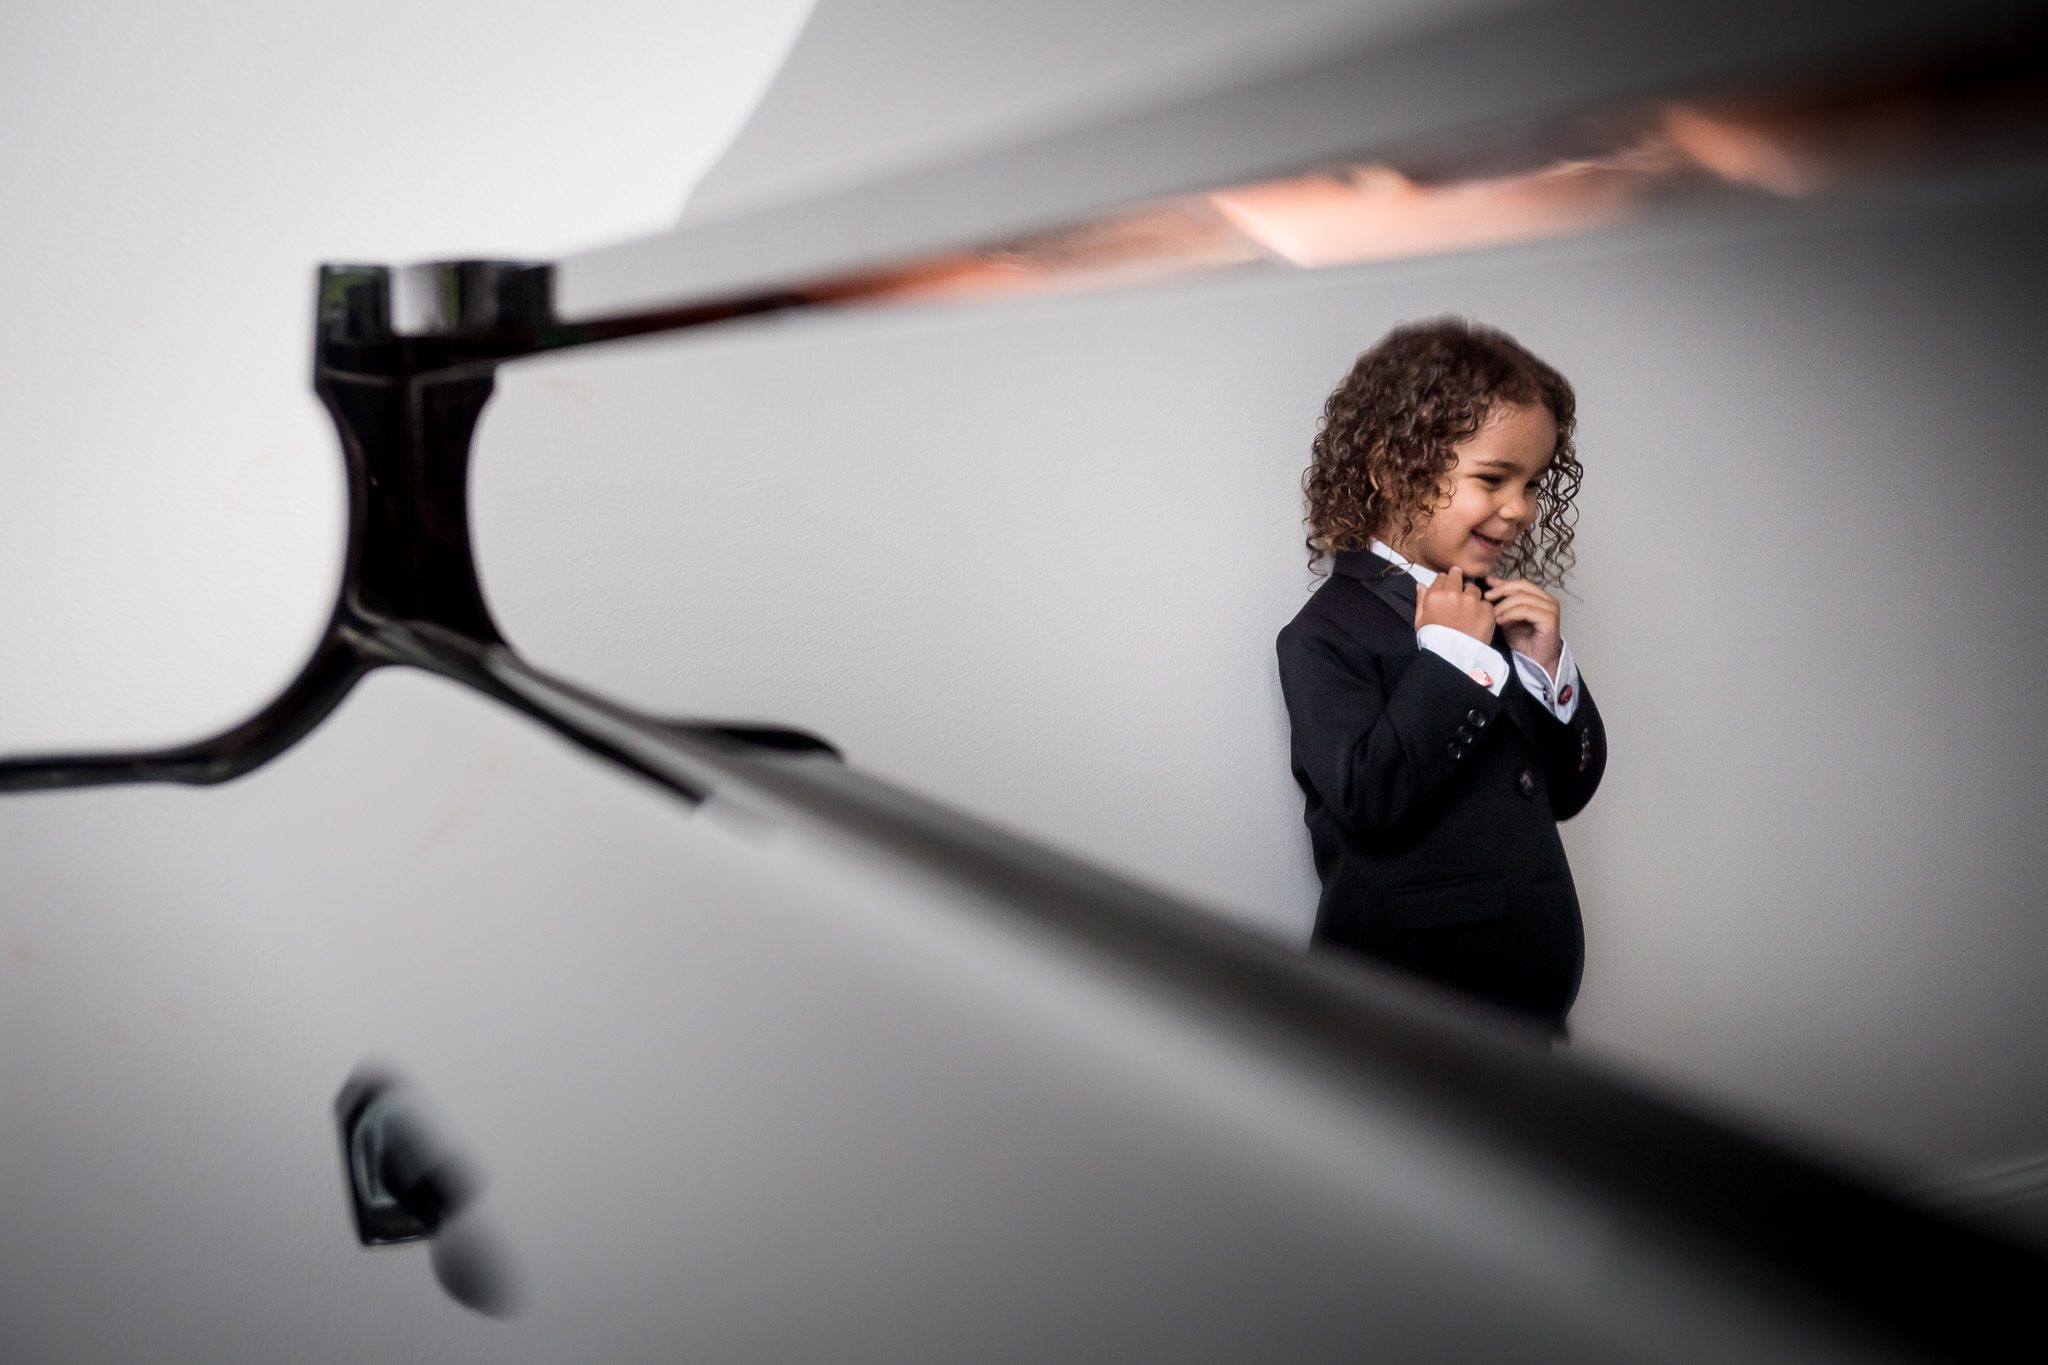 Image of the bride and groom's young son in his tuxedo reflecting the surface of a black grand piano.